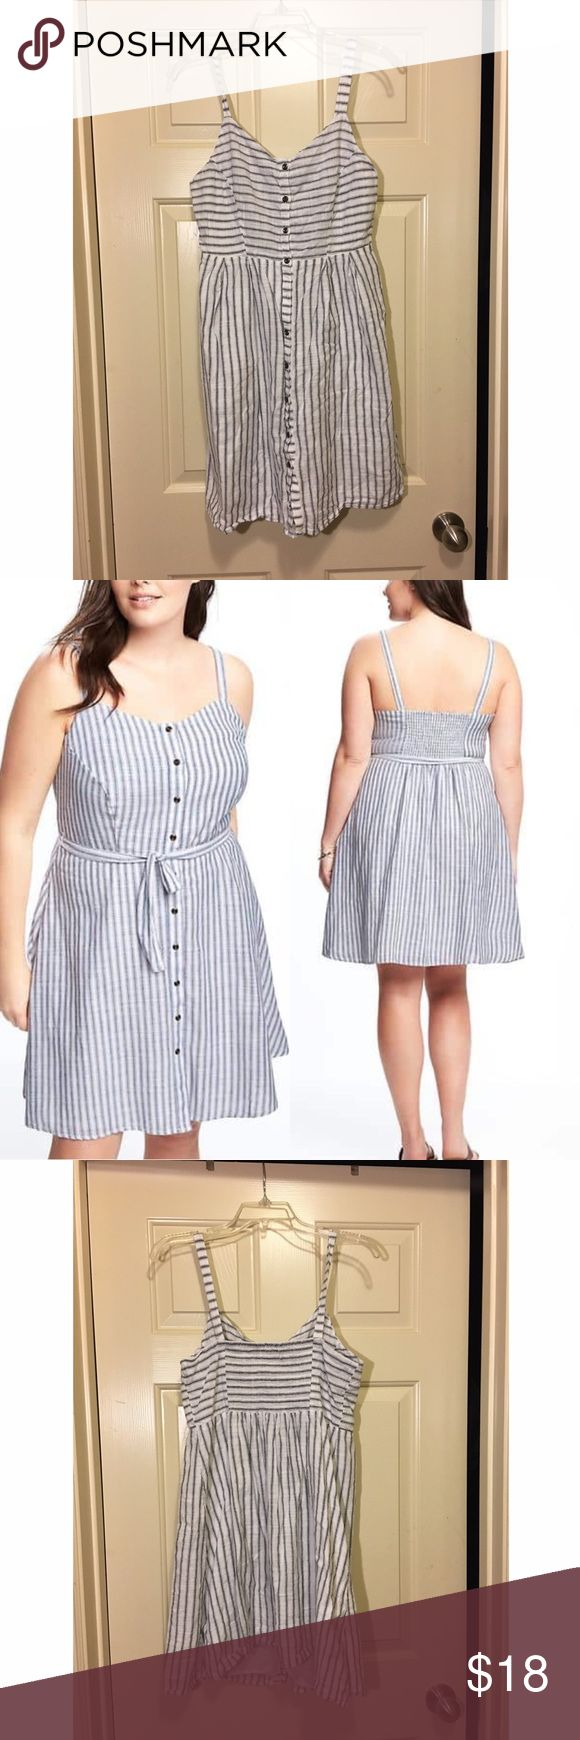 "Nautical striped button down dress ***BUNDLE BUNDLE BUNDLE*** AND RECEIVE A DISCOUNT!!   Blue striped  Fit and flare  Tank top  Sweetheart neckline Smocked, elasticized back Full-length button Soft, medium-weight slub-knit cotton with full lining 35"" shoulder to hem    No rips, stains, snags,  in great shape!!   ***MAKE AN OFFER*** Dresses Midi"